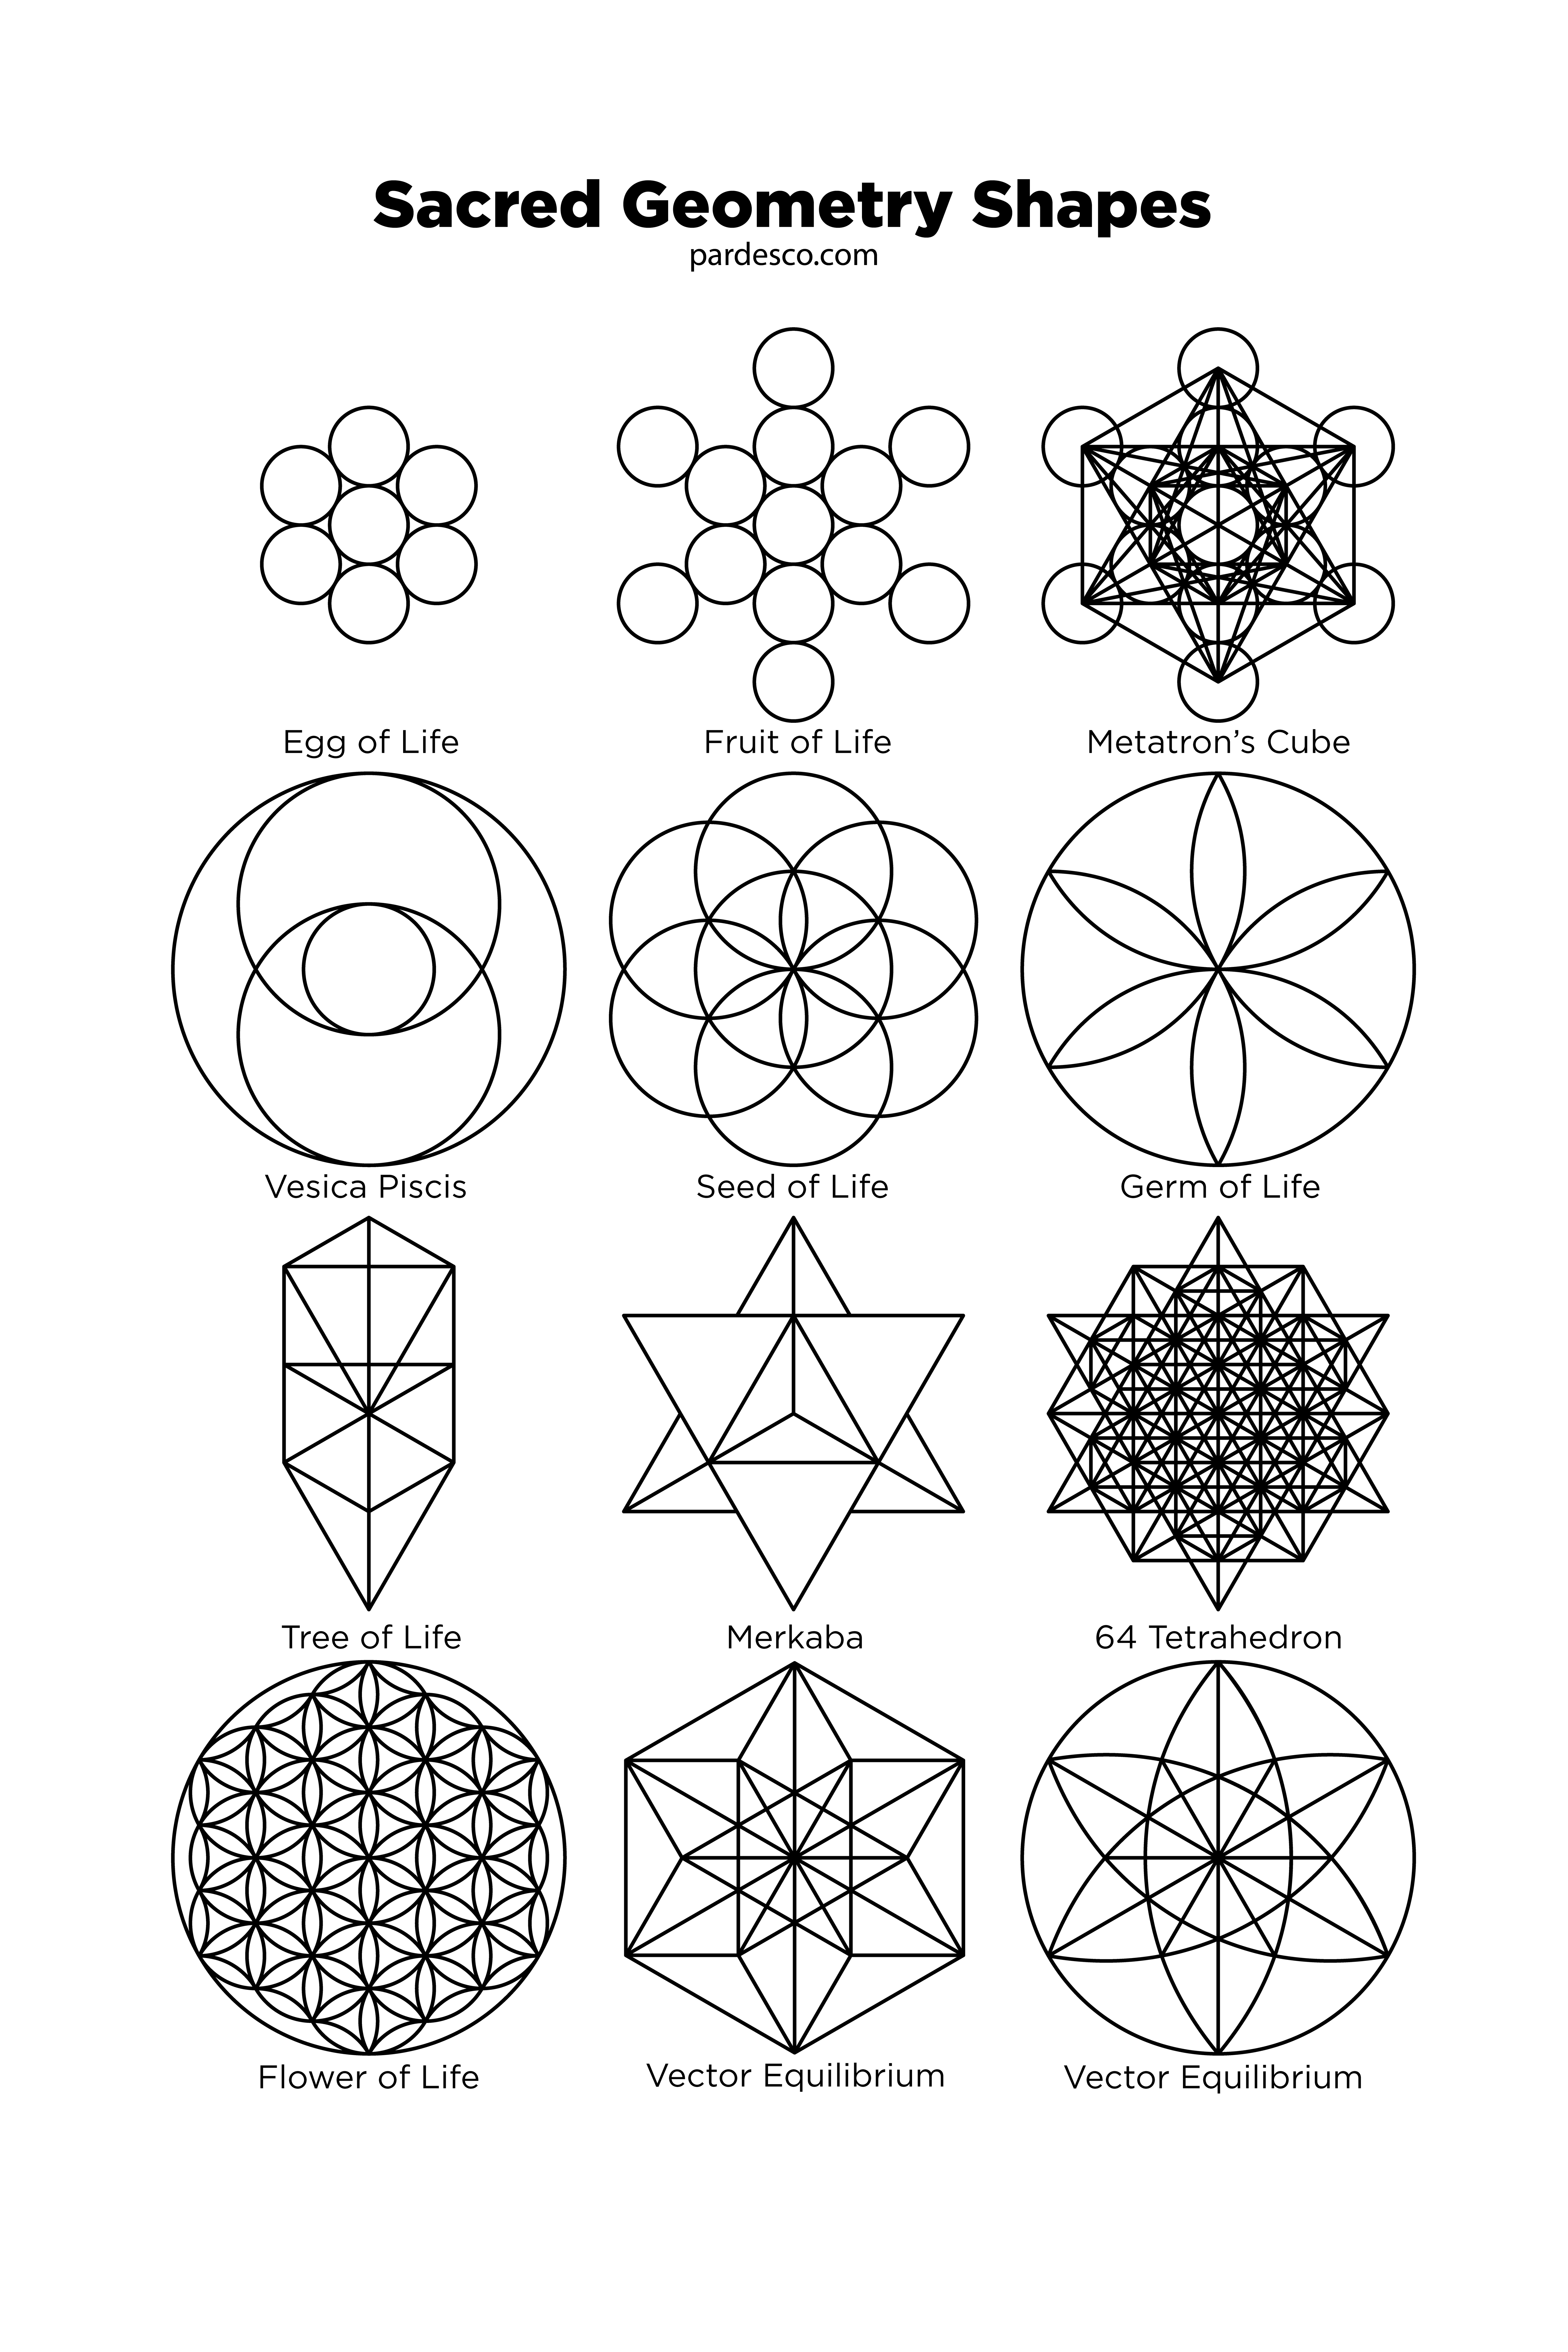 All the basic Sacred Geometry Symbols. These symbols can be used as Sacred Geometry tattoo ideas. Created by Sacred Geometry artist Pardesco. Click the link to Learn more about each of these symbols on our website.